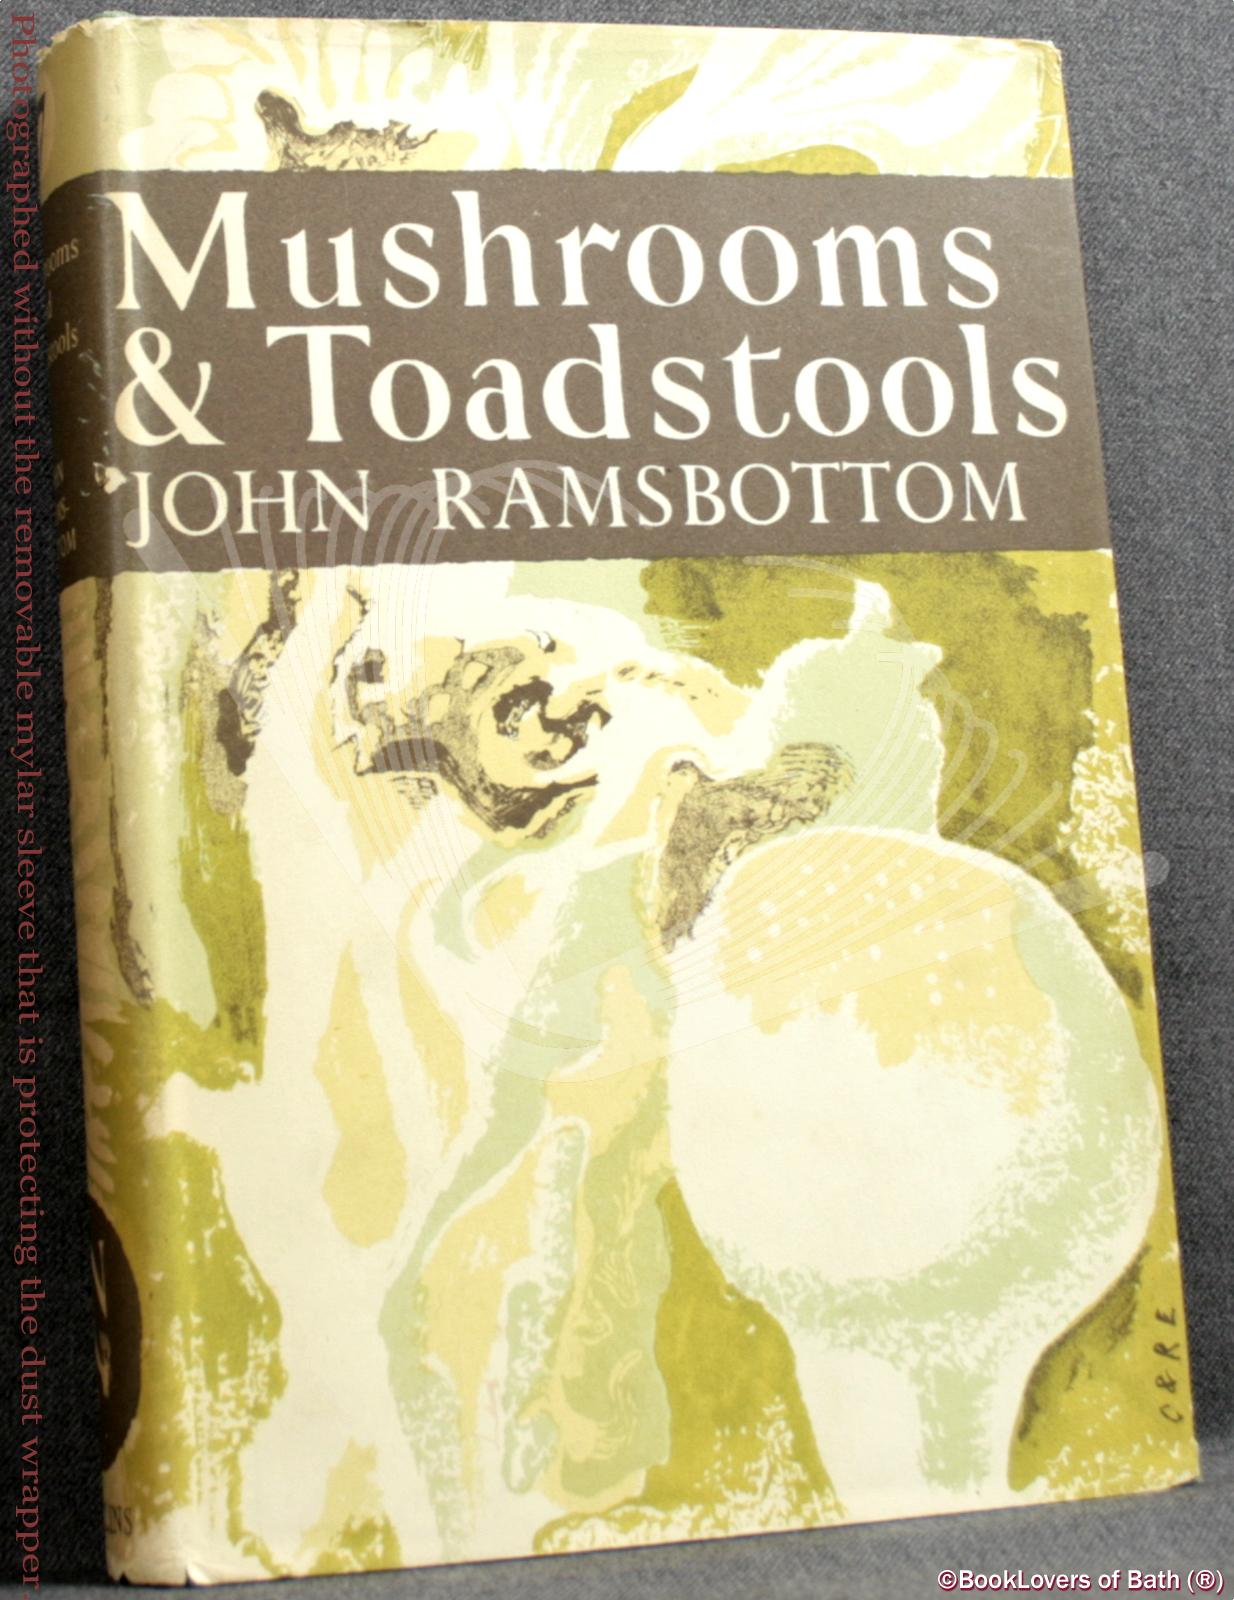 Mushrooms & Toadstools: A Study of the Activities of Fungi - John Ramsbottom